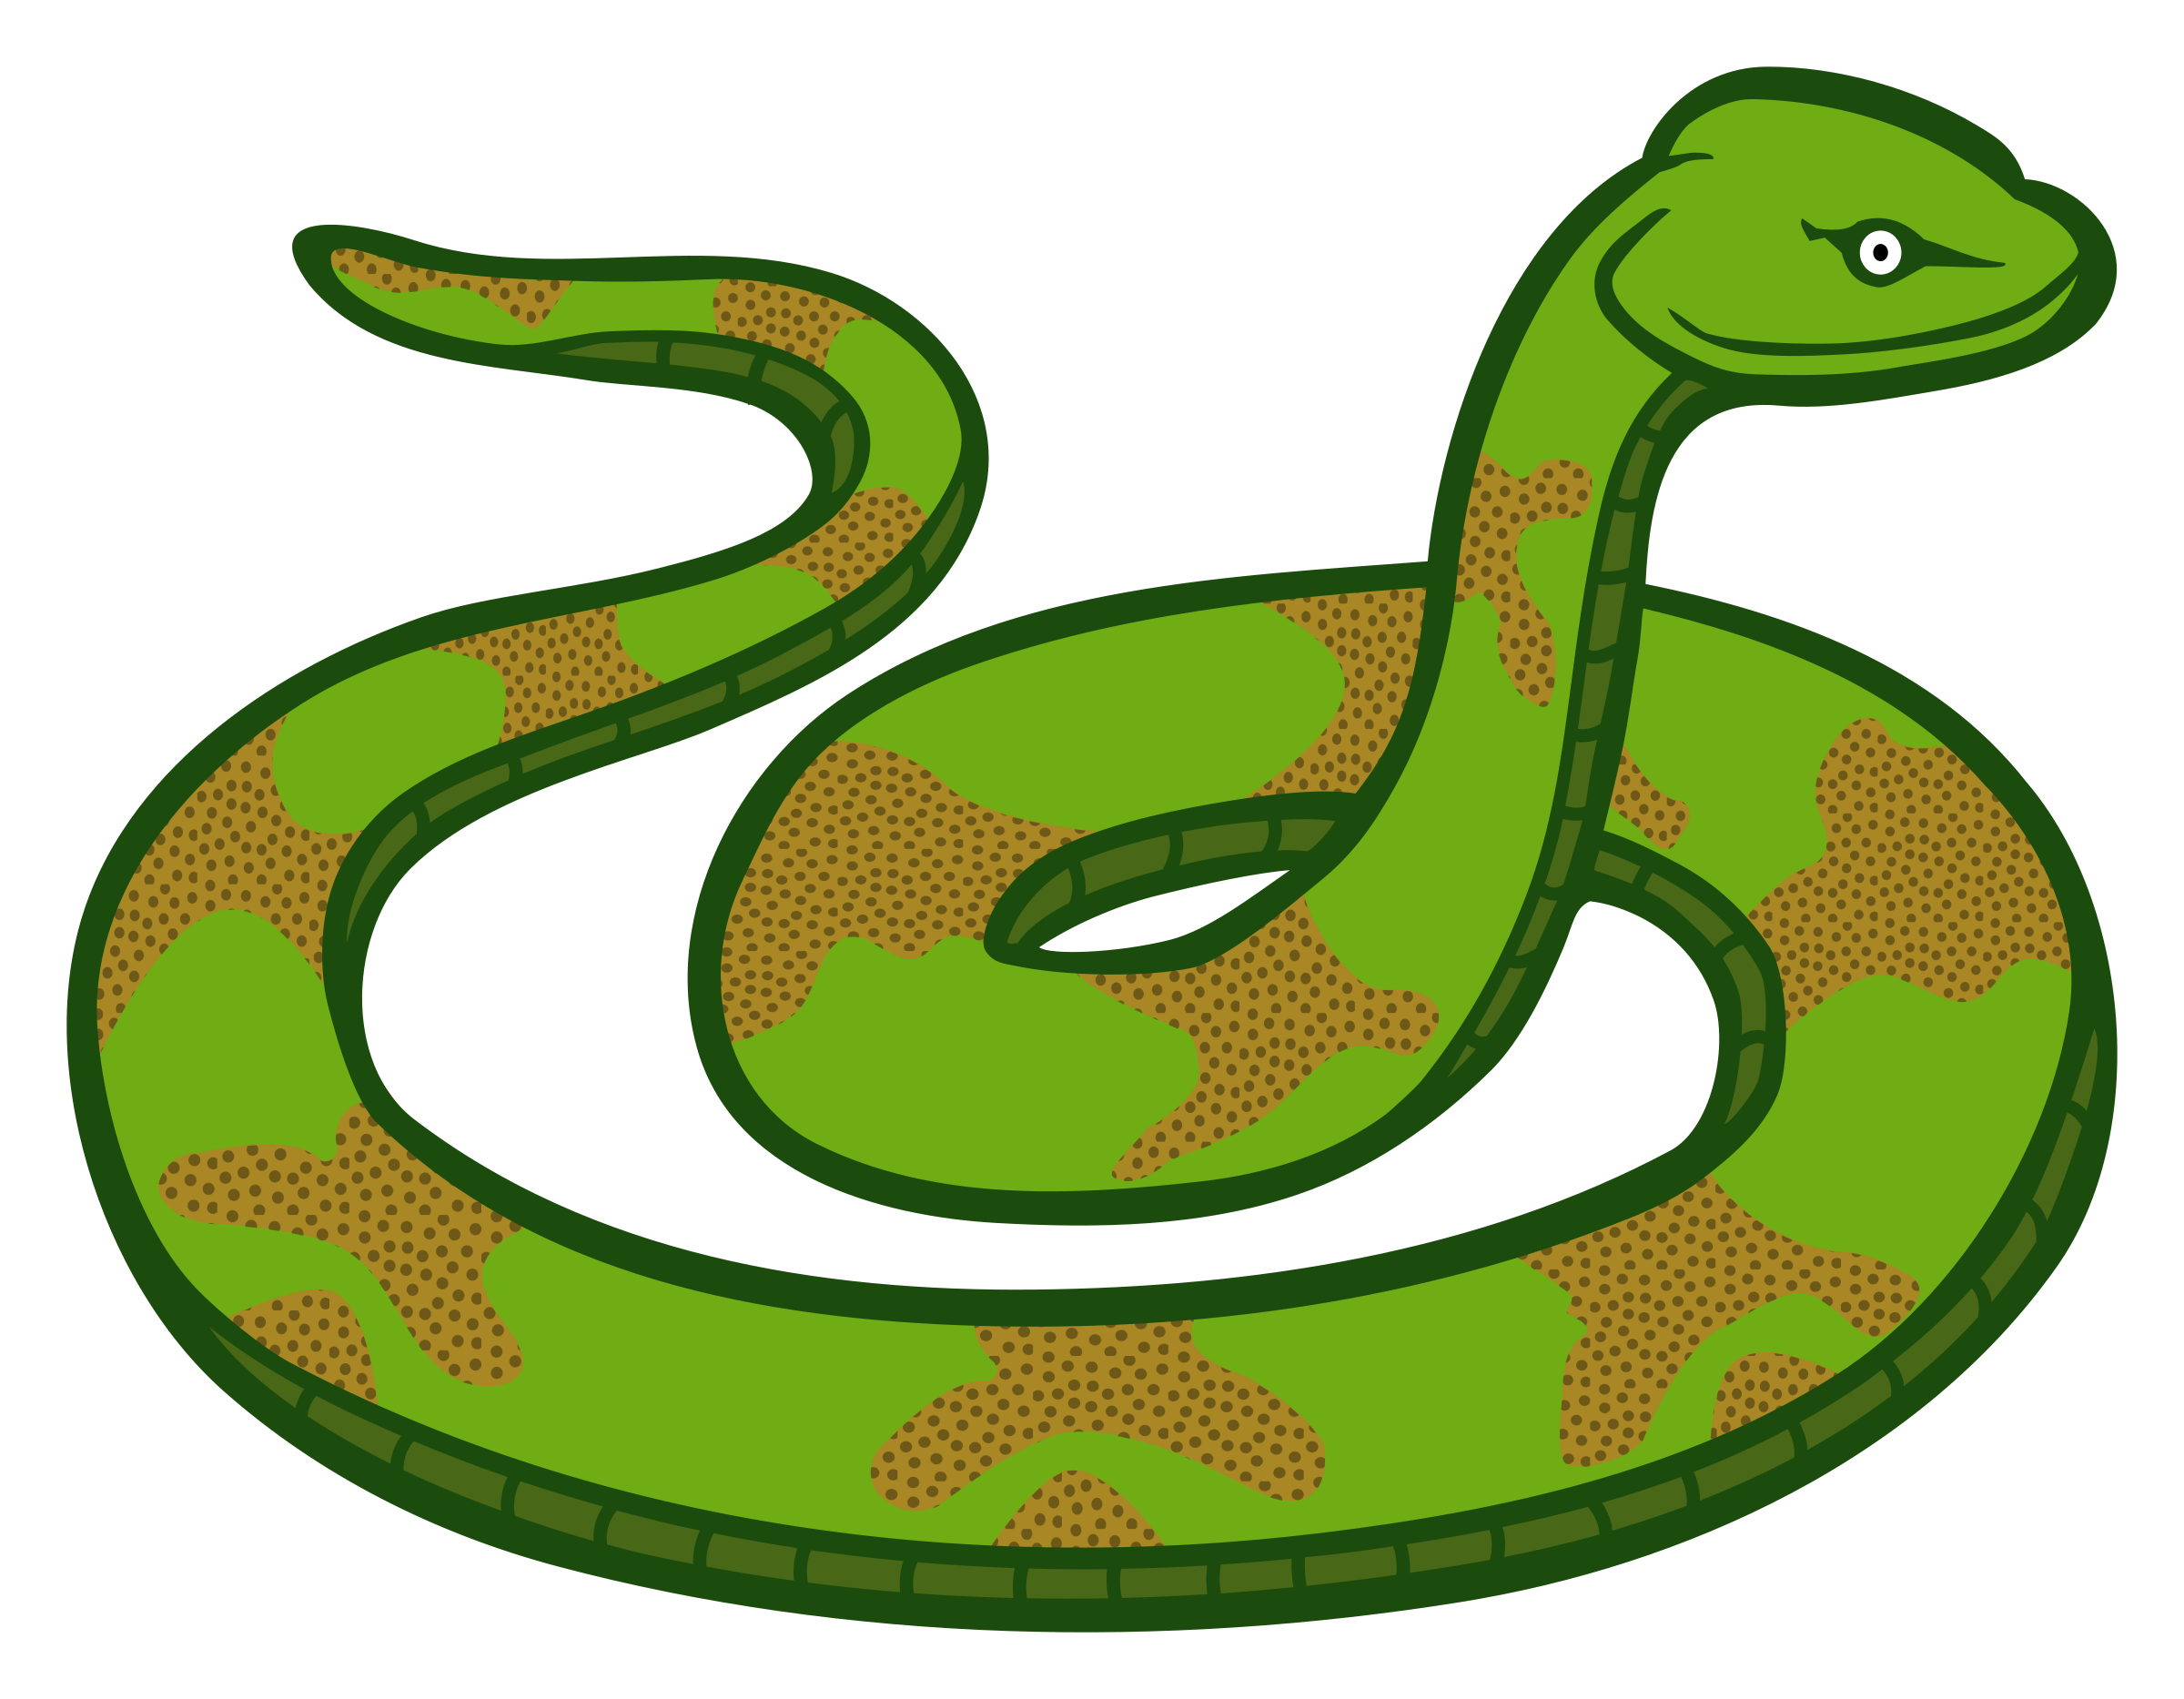 Snake clipart Green Others Inspiration and Green